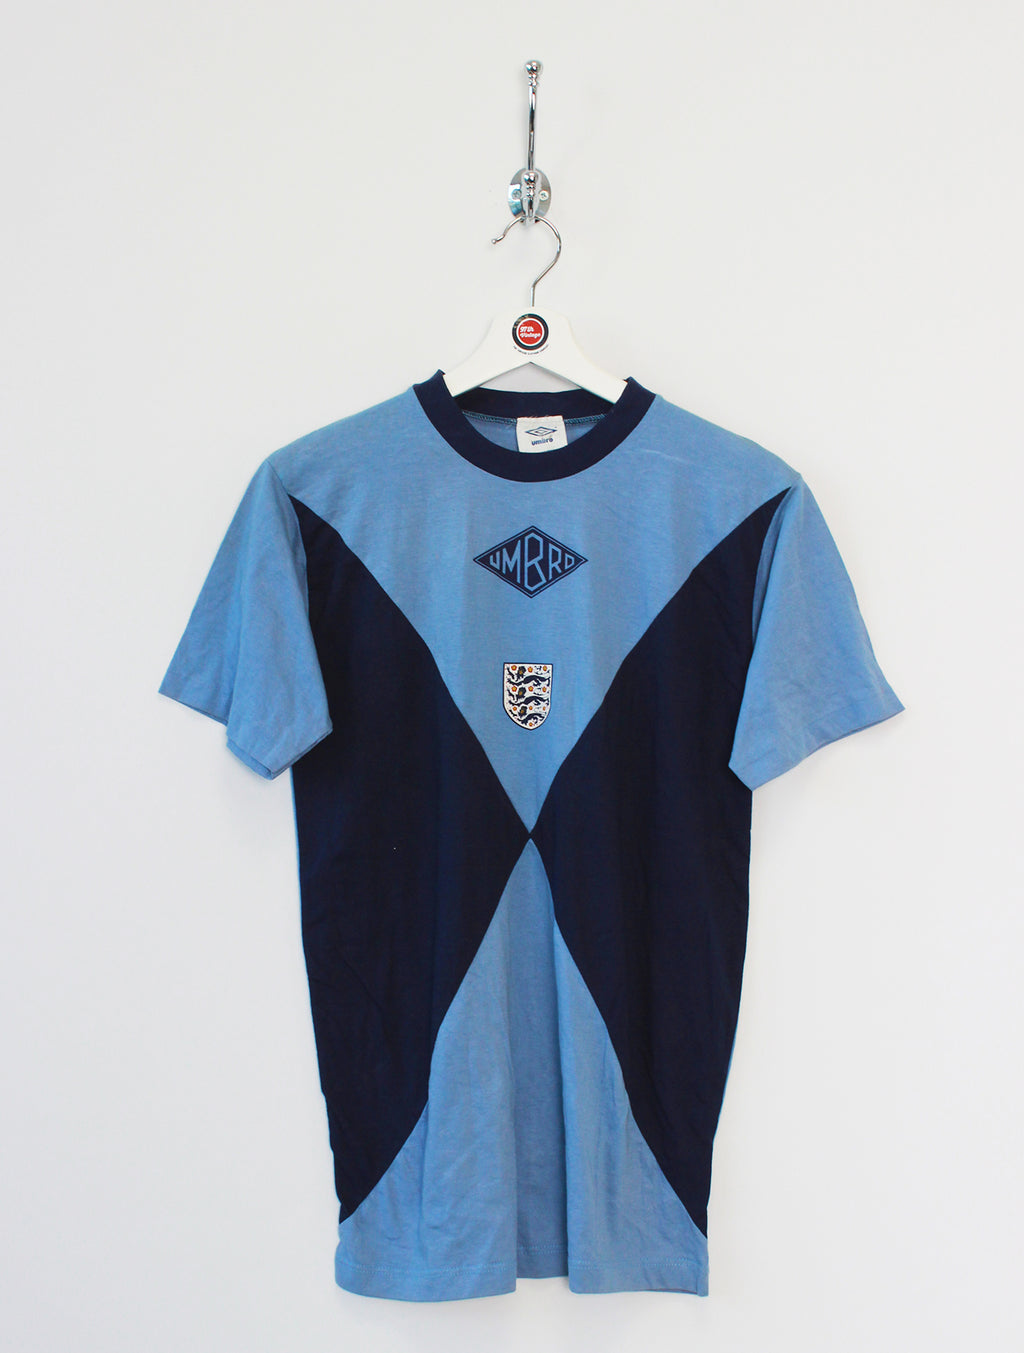 1990 England Training Shirt (S)